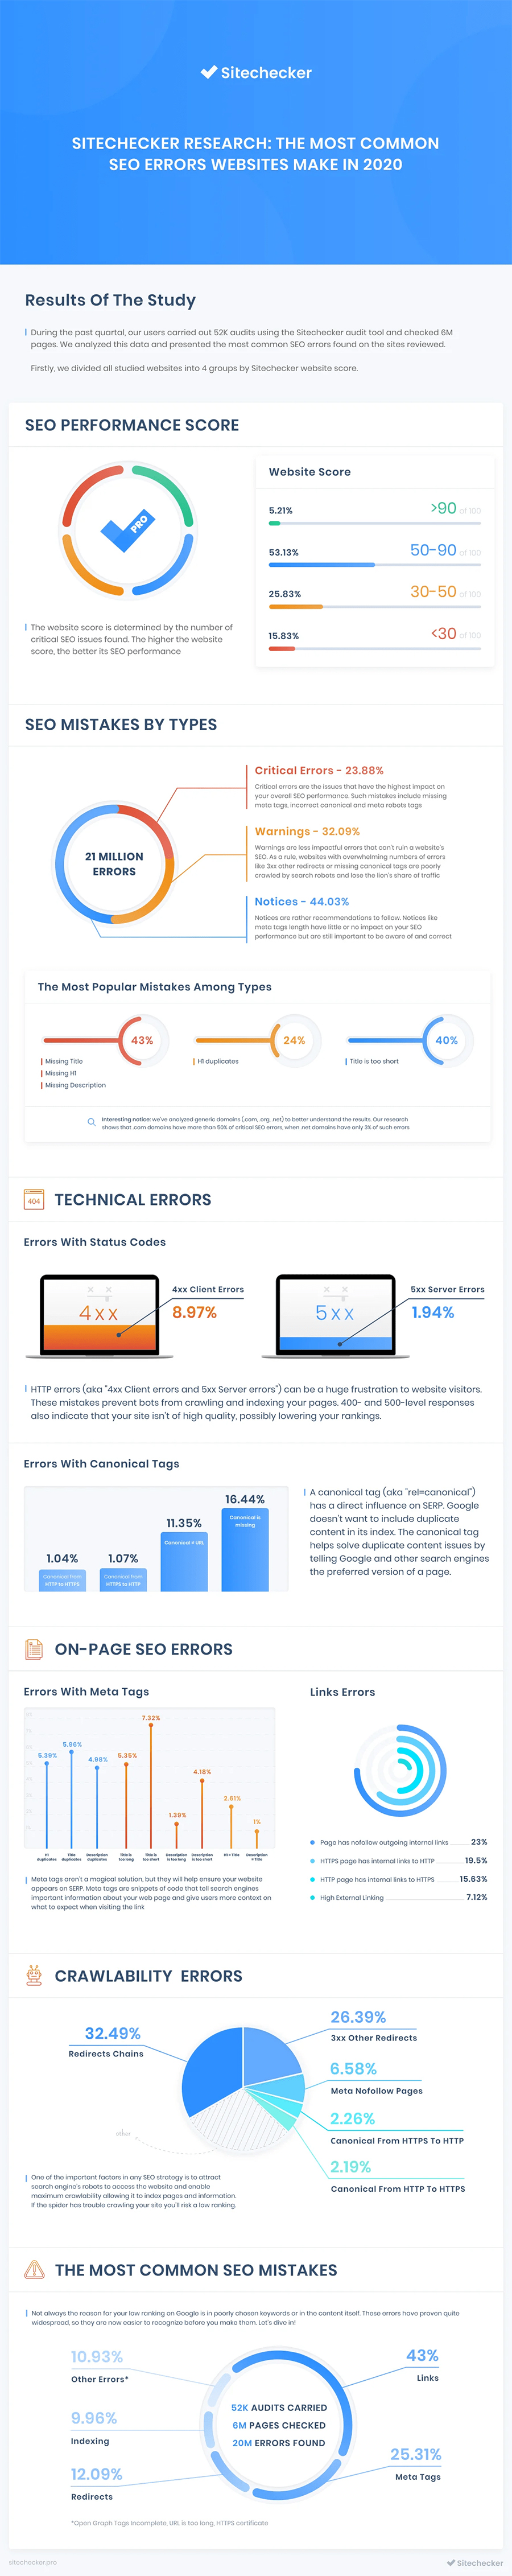 Infographic about common SEO mistakes